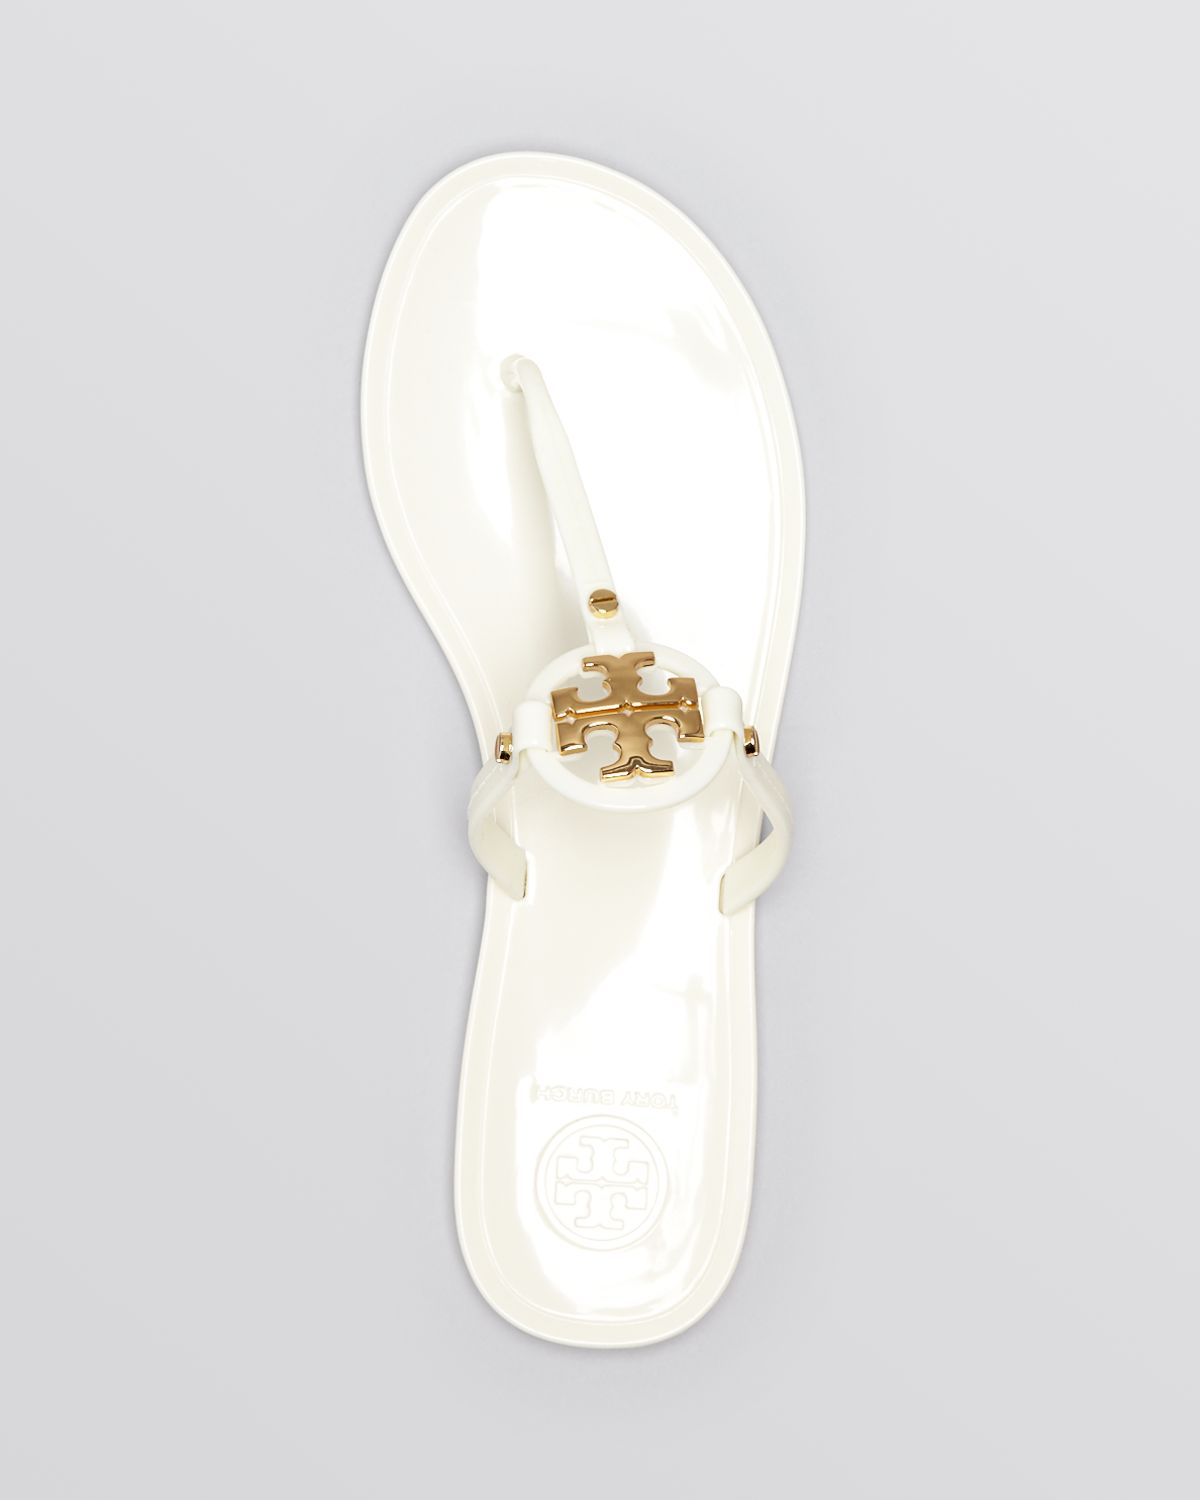 fd42cd65f Lyst - Tory Burch Flat Thong Sandals - Mini Miller Jelly in White